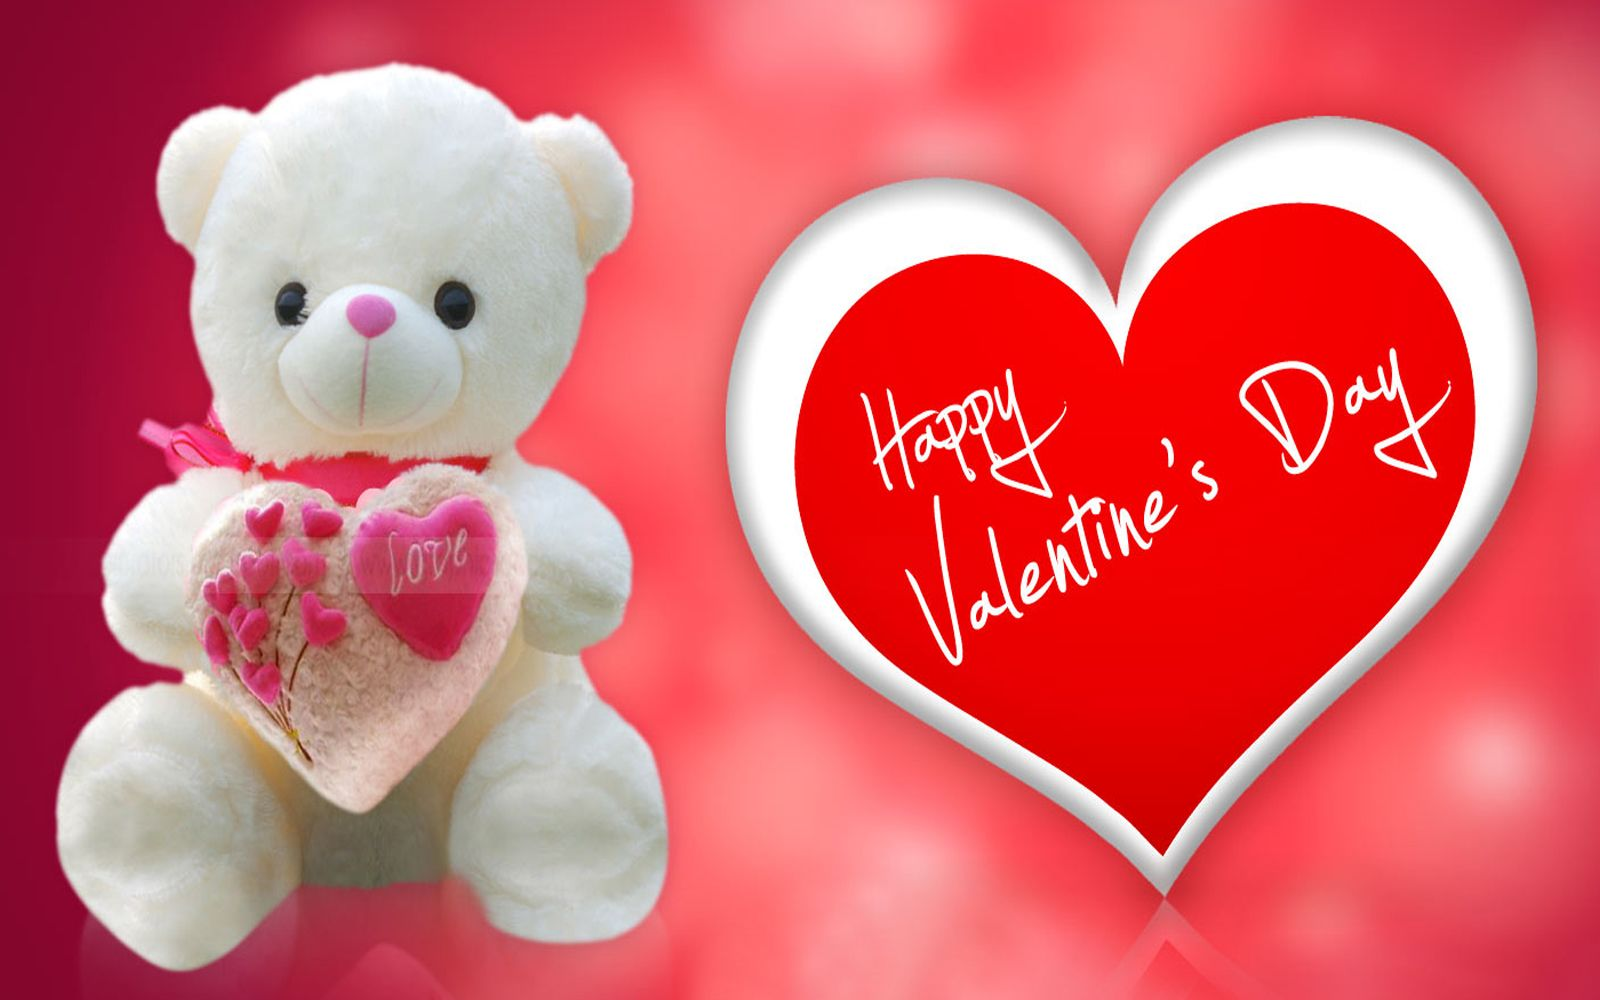 valentines day hd pics 1 | valentines day hd pics | pinterest